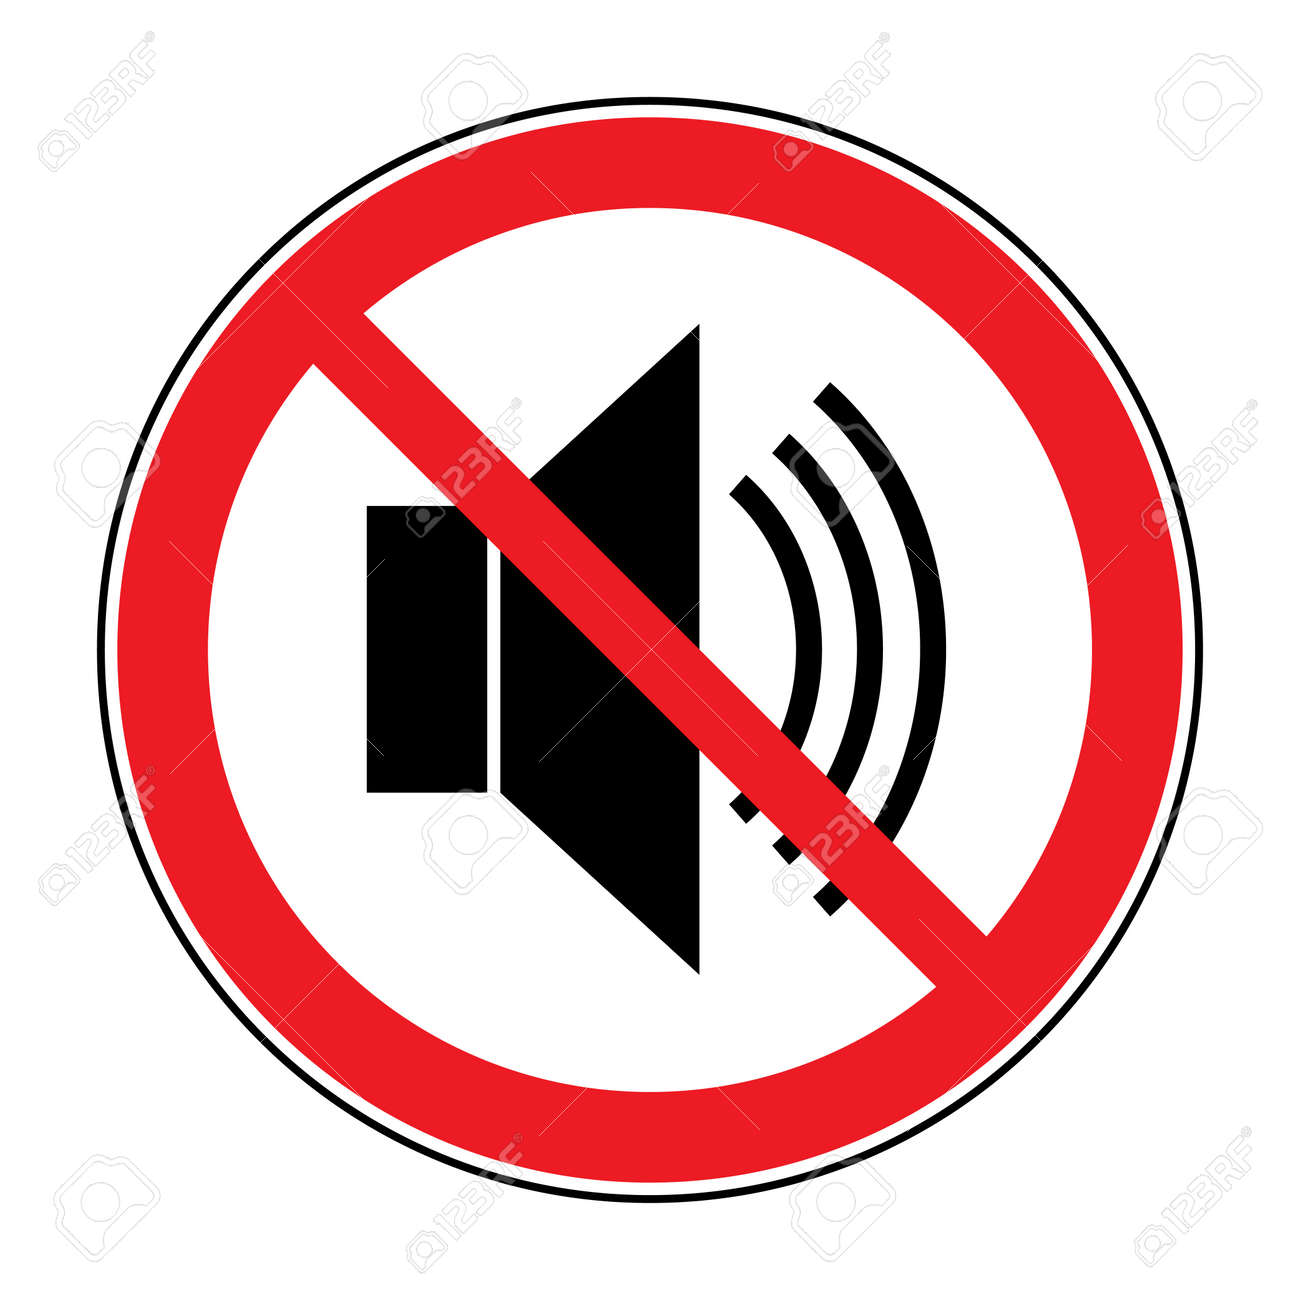 Quiet images stock pictures royalty free quiet photos and stock no noice icon indicating signal to silence mute speaker with loud prohibited sign buycottarizona